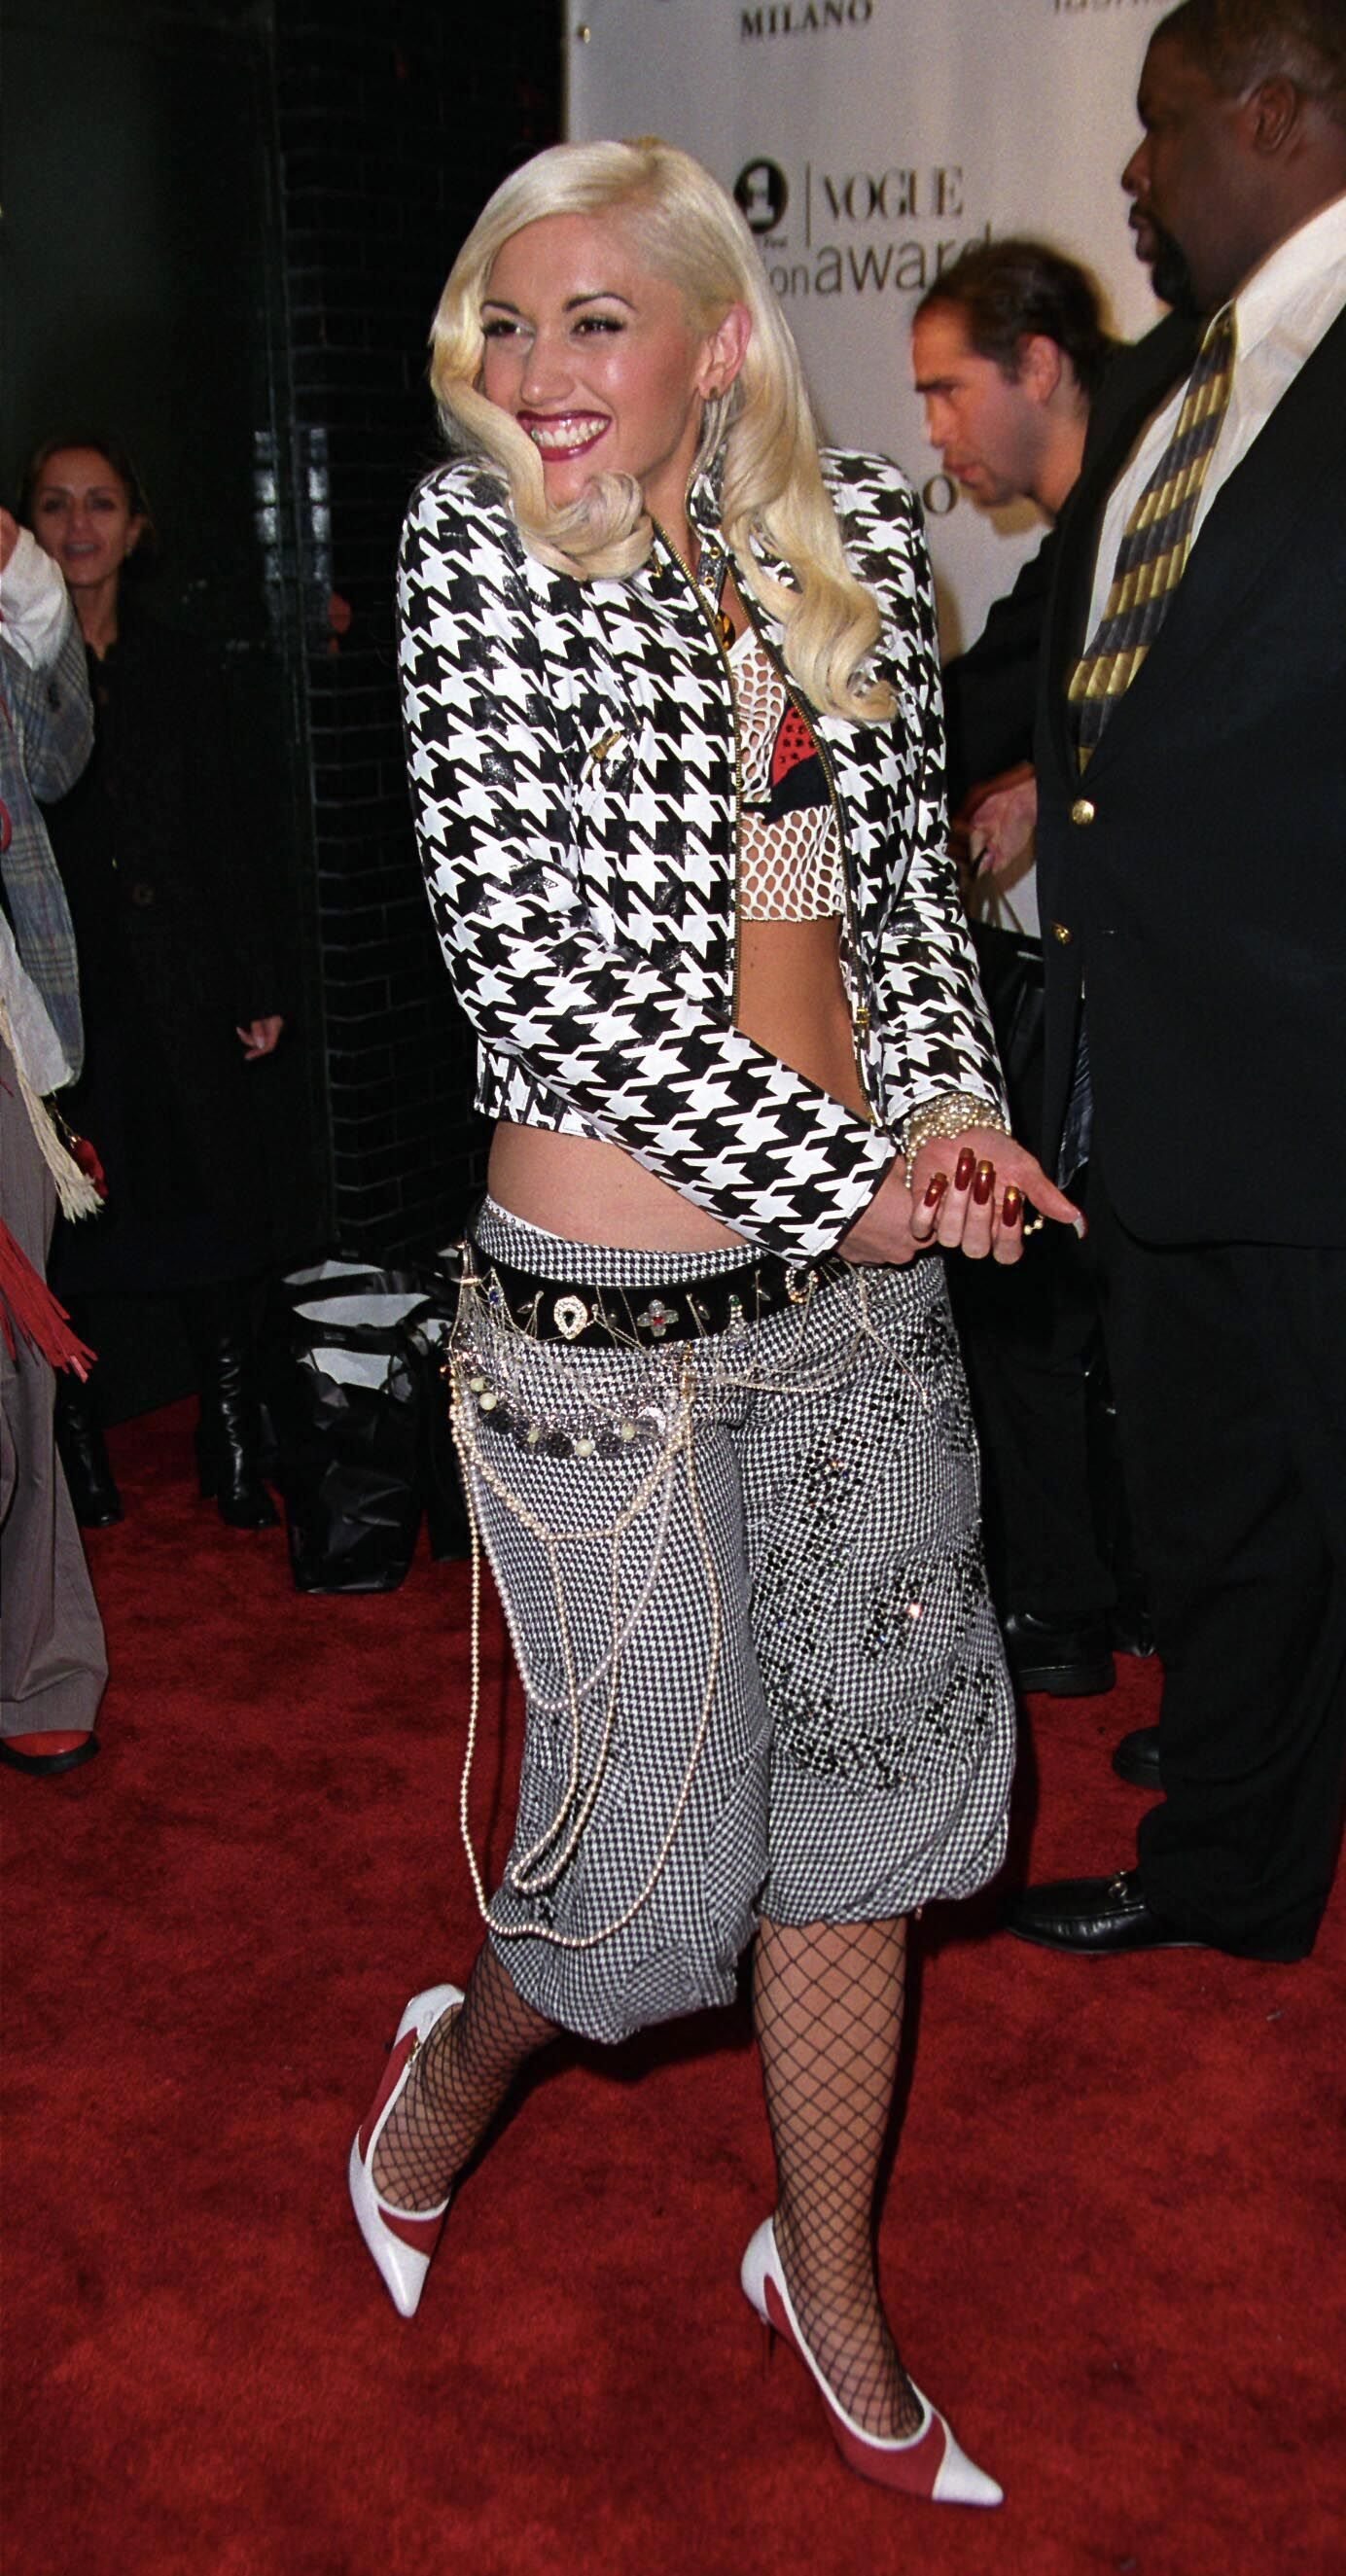 304a4397e2 The Worst Early 2000s Fashion and Outfits - Celebrity Outfits From Early  2000s